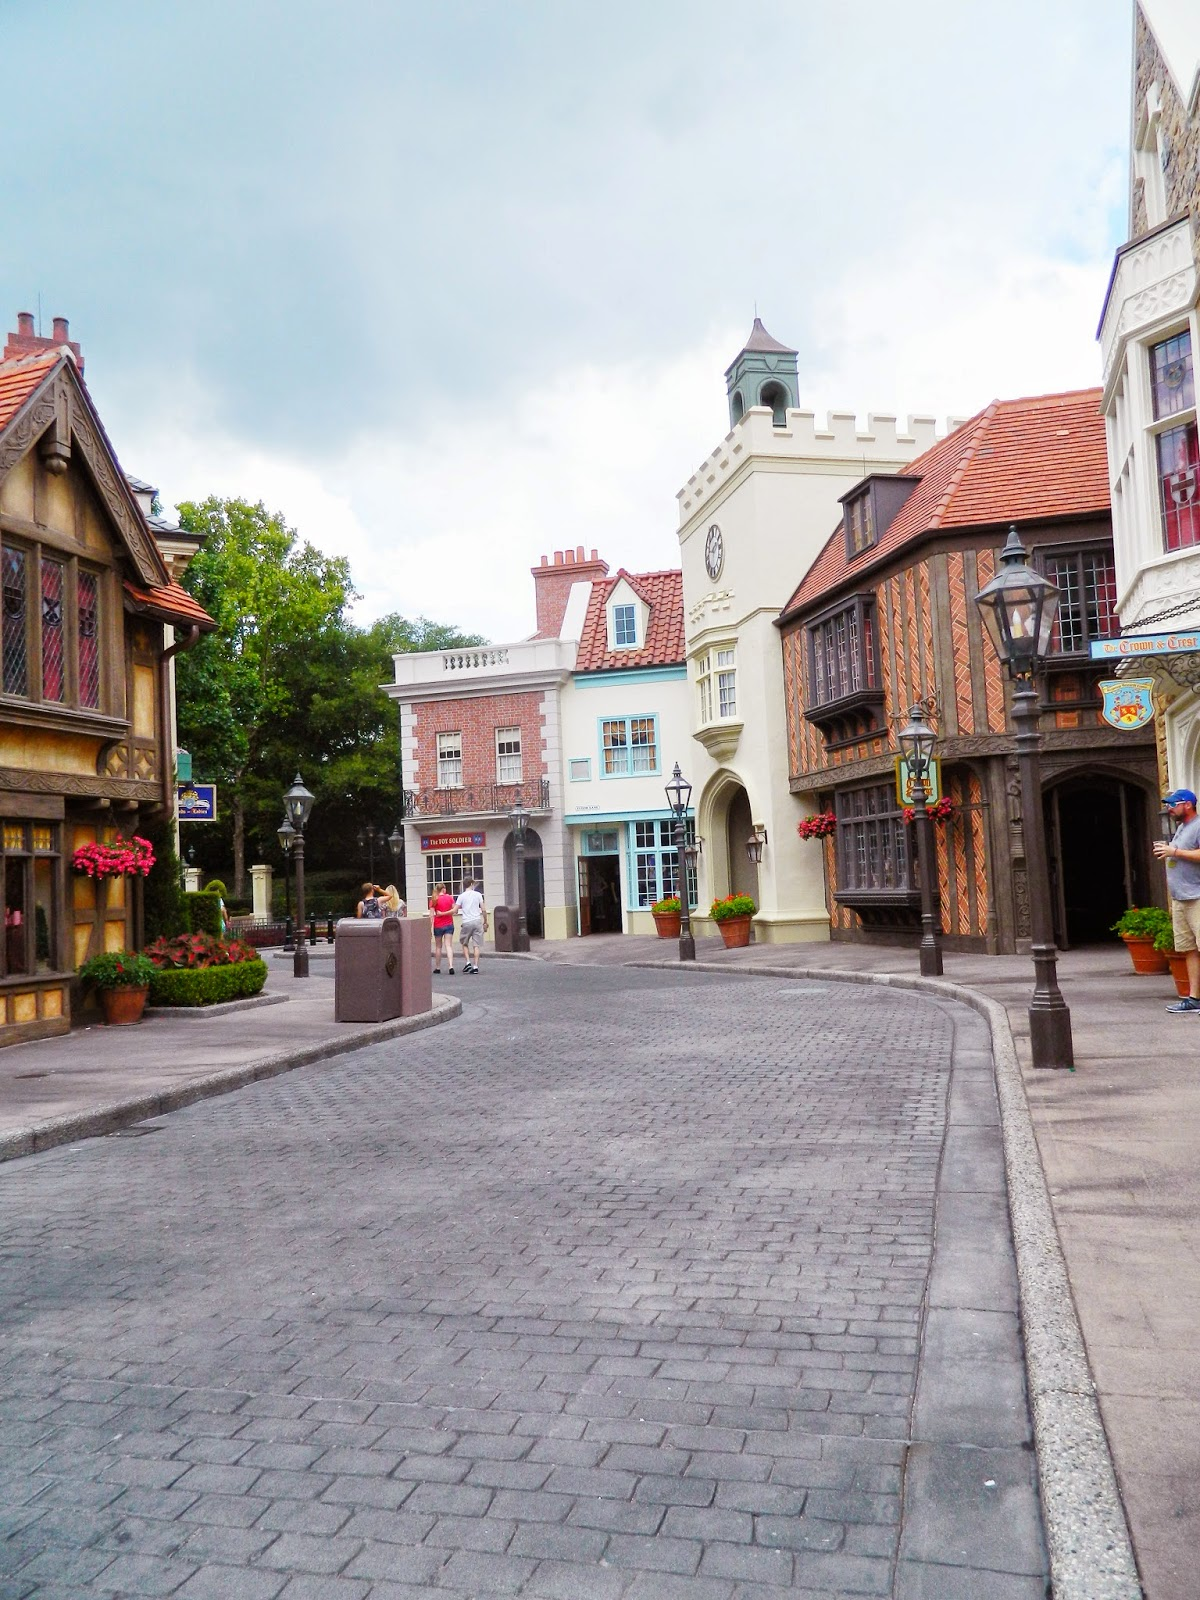 epcot england street buildings